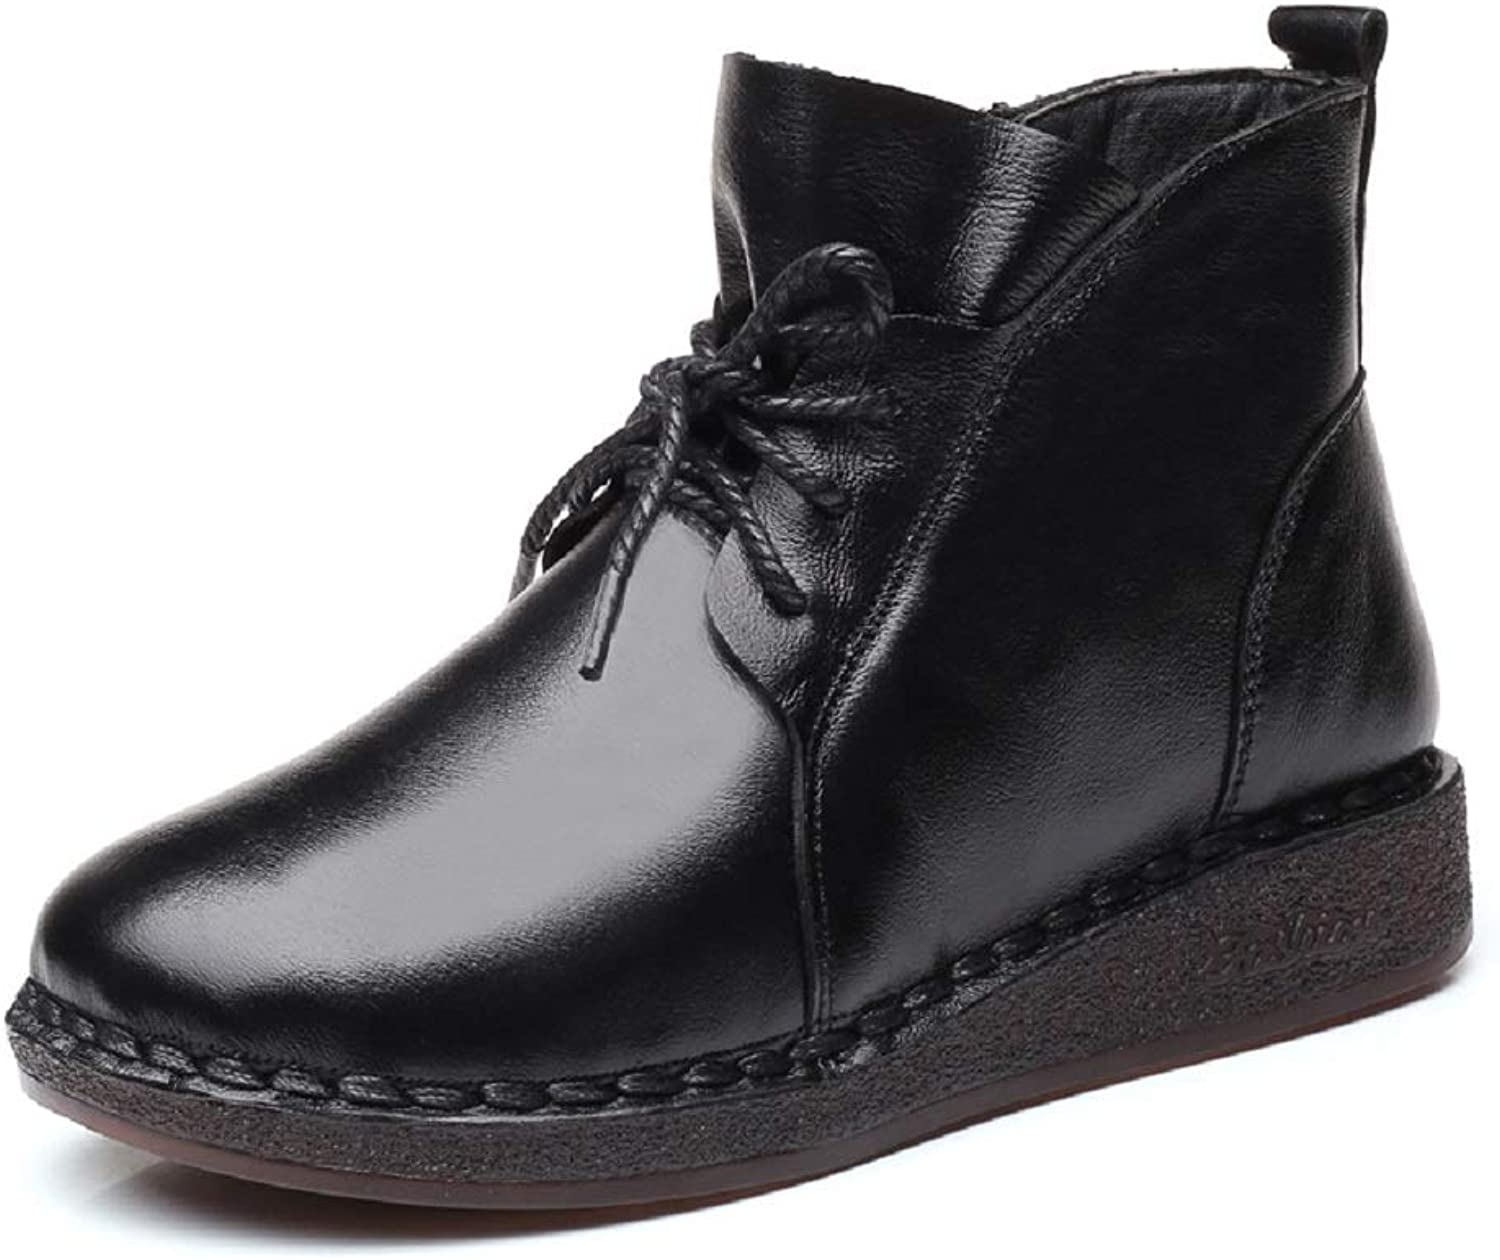 LingGT Fur Lined Boots Women Leather Flat Casual Zipper shoes (color   Black, Size   CA 7)